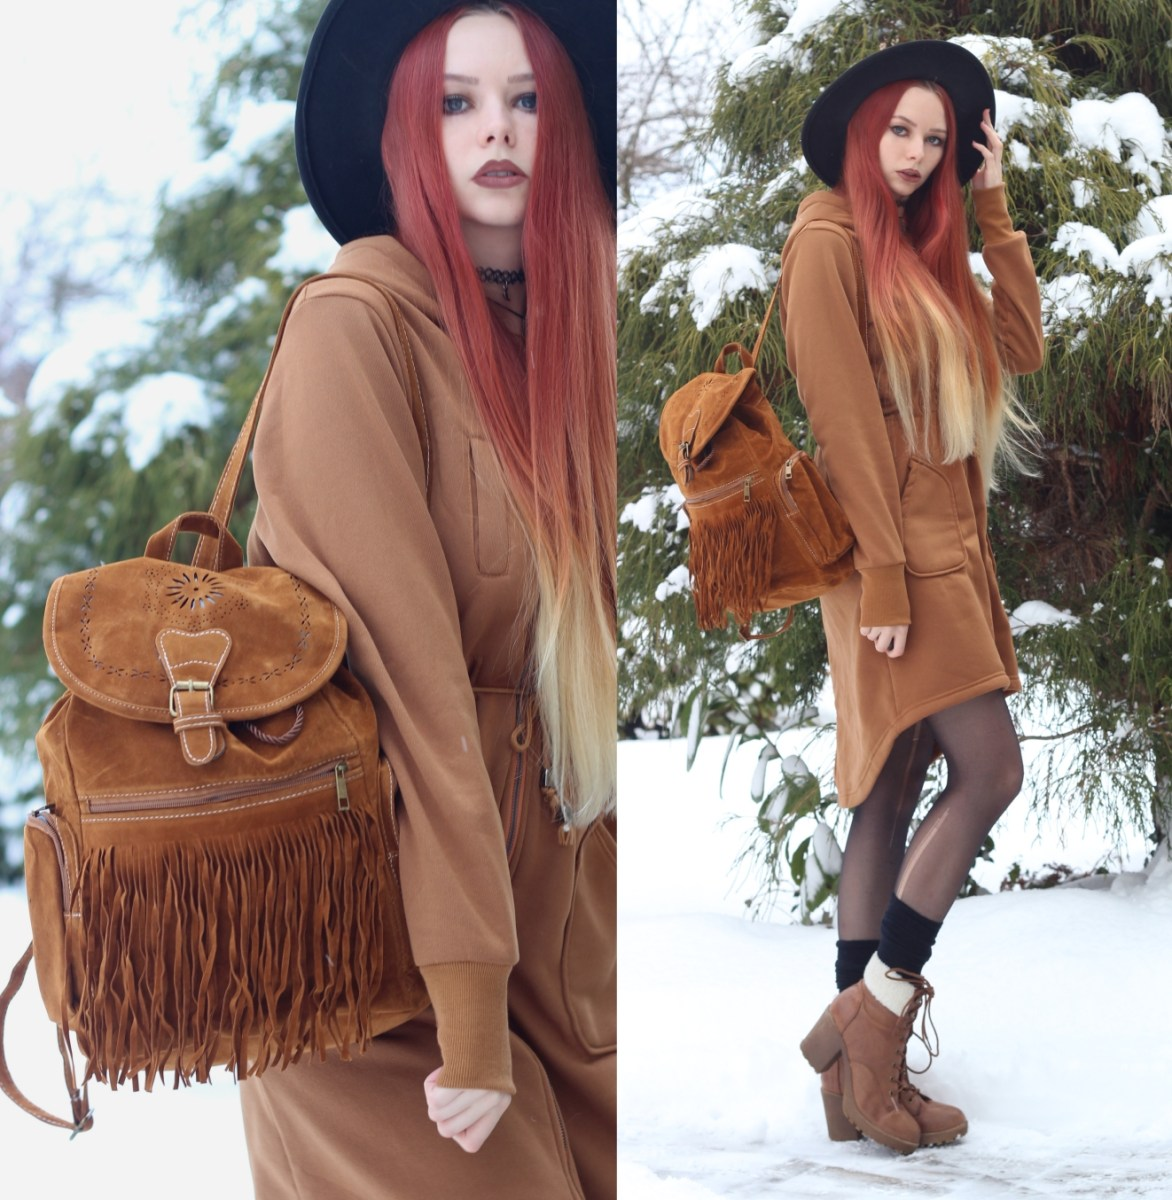 Hoodie jacket and boho backpack: adventure awaits